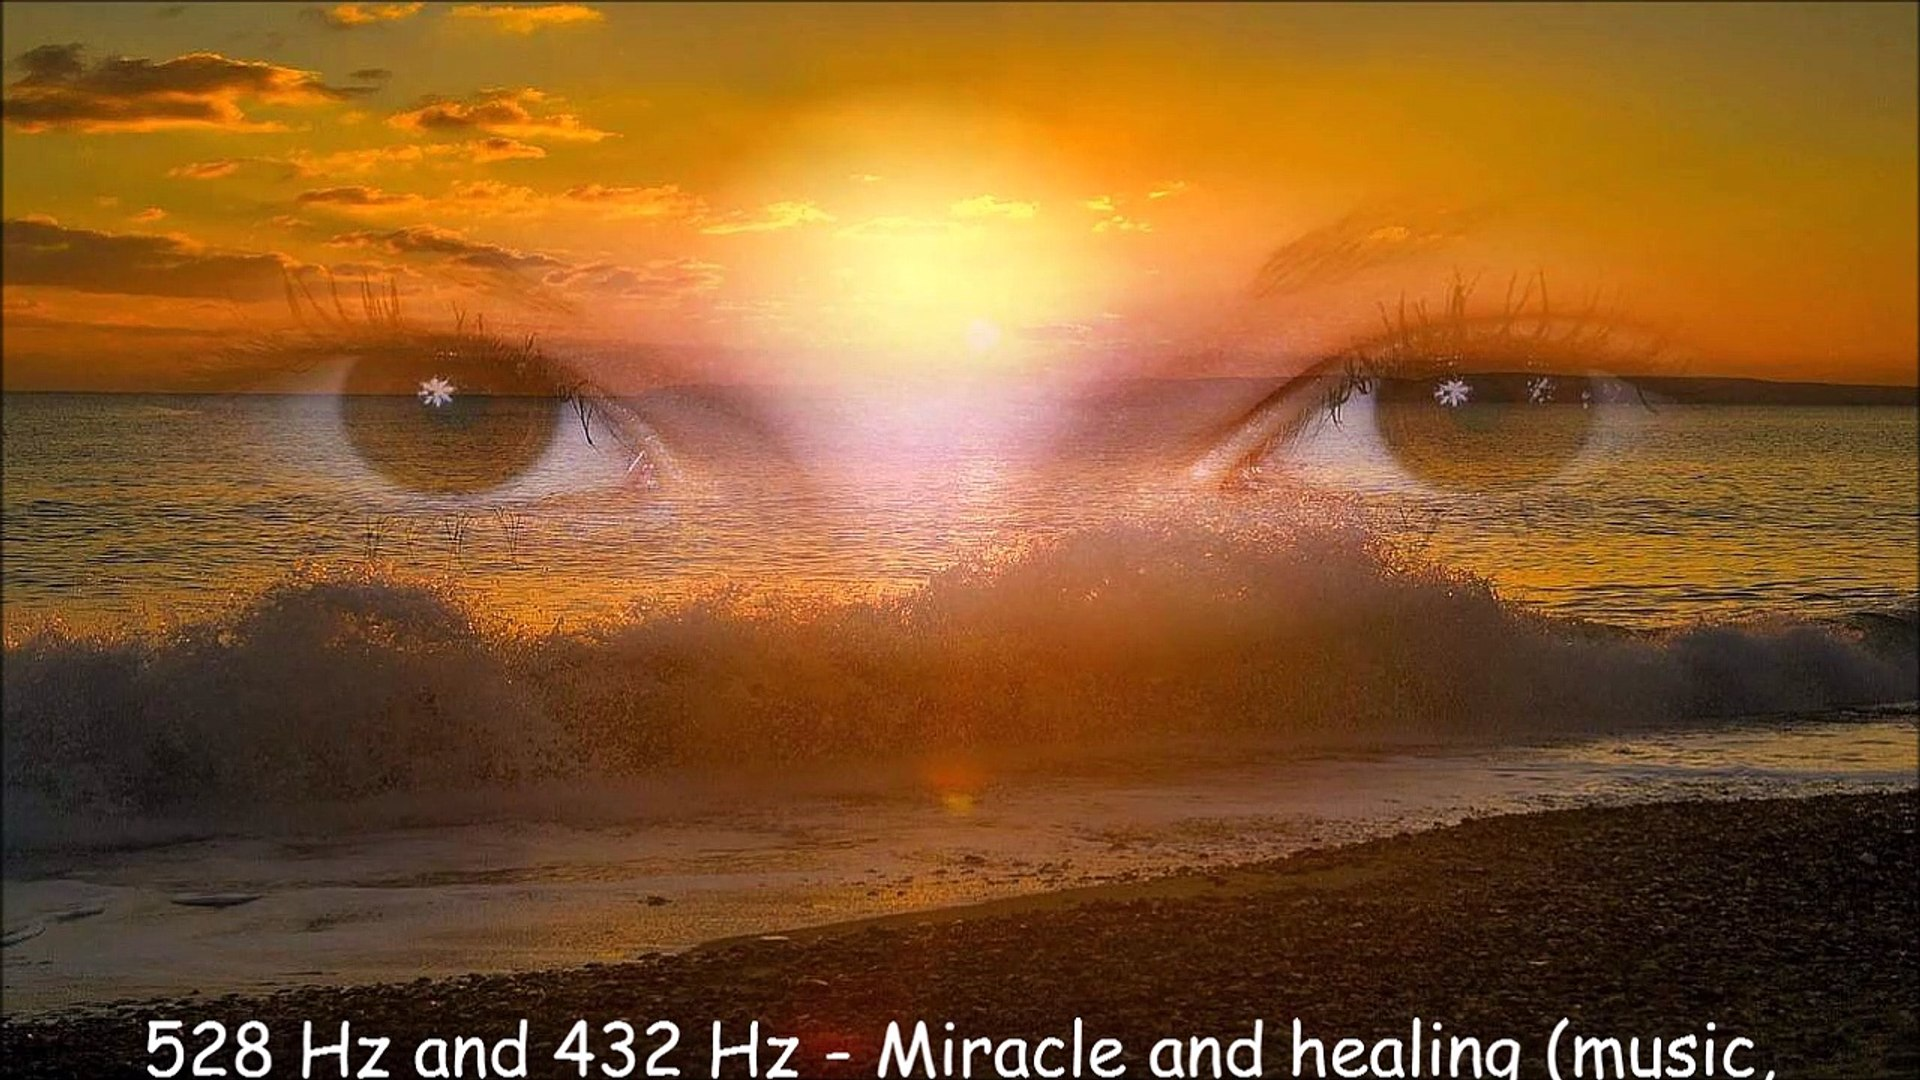 528 Hz and 432 Hz - Miracle and healing (music, vibration, noise, sound,  frequency)